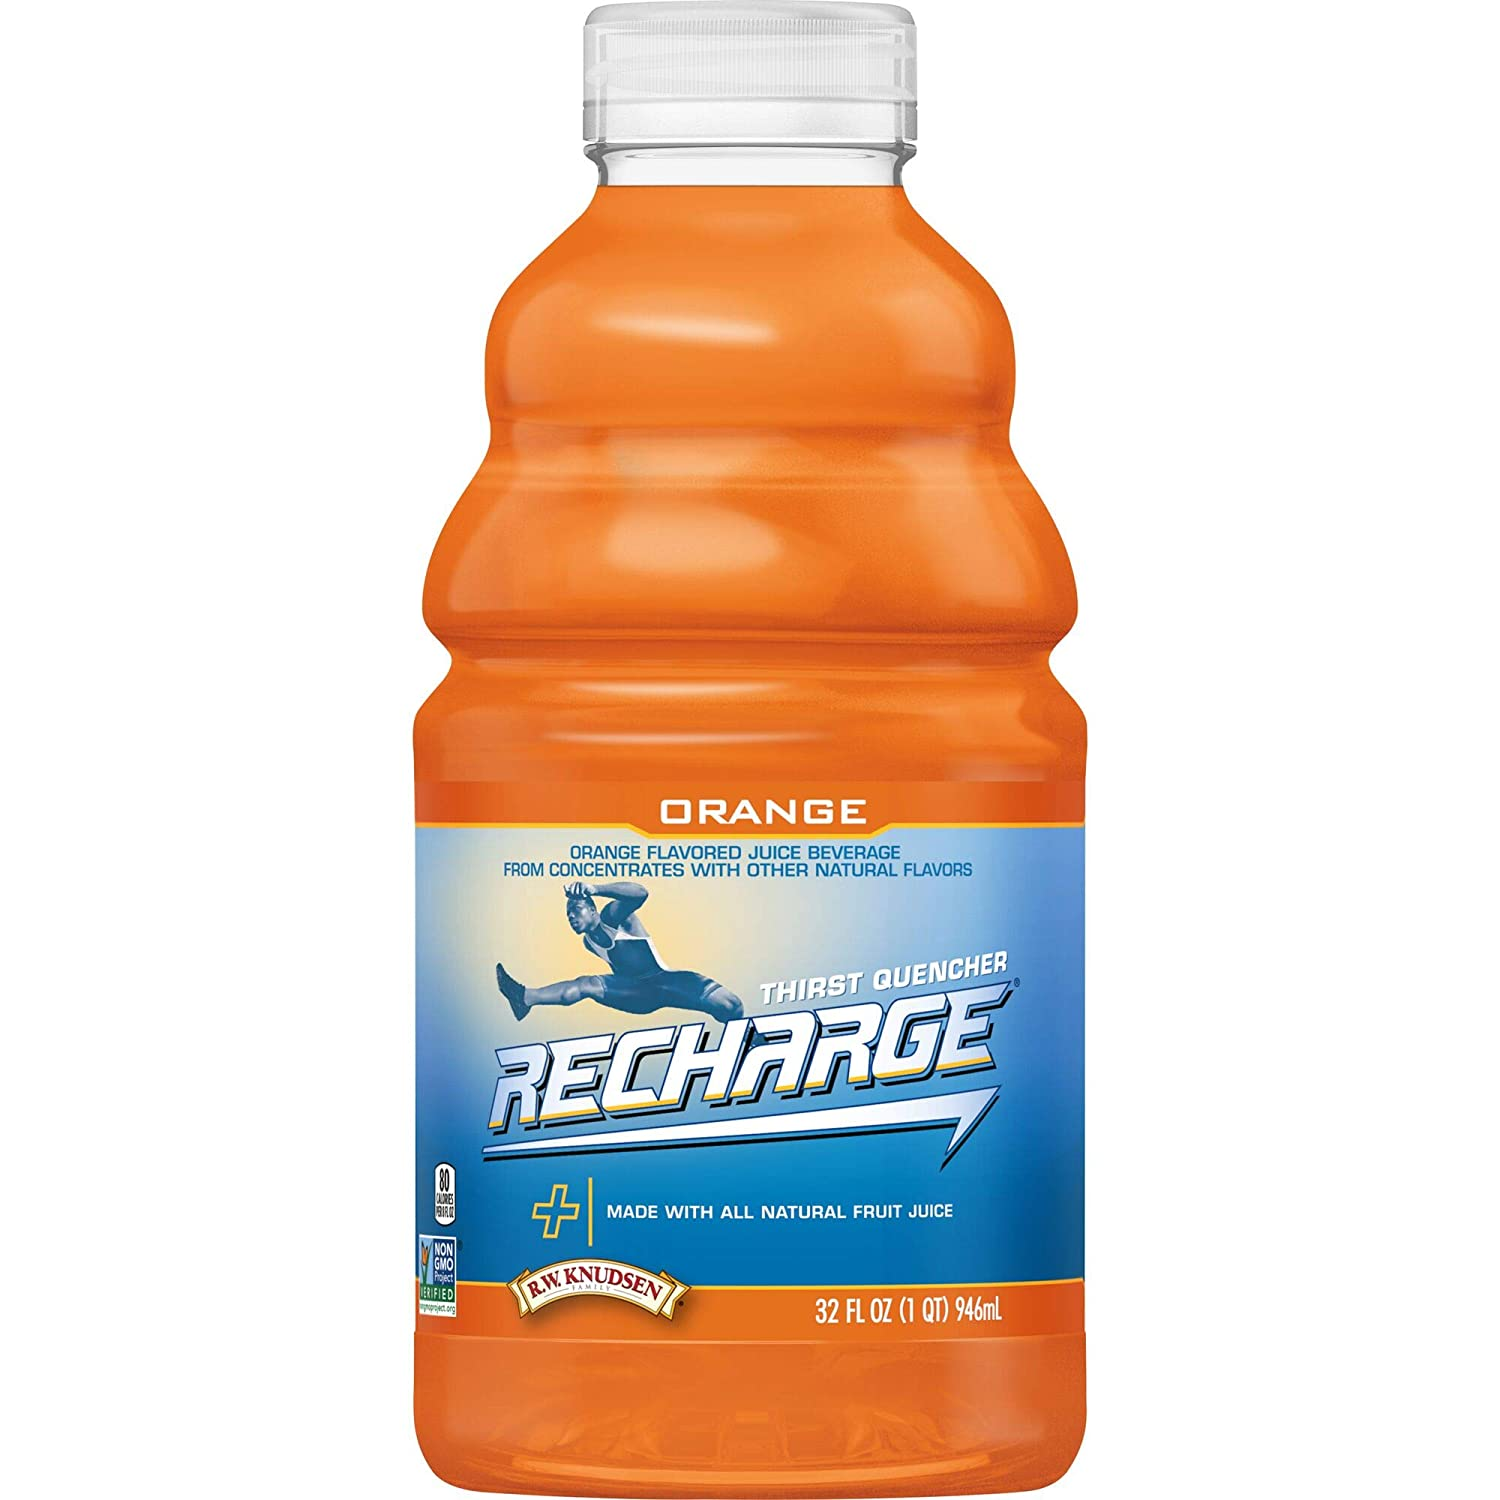 R.W. Knudsen Recharge Orange Flavored Gifts Sports Beverage with Juice Manufacturer regenerated product